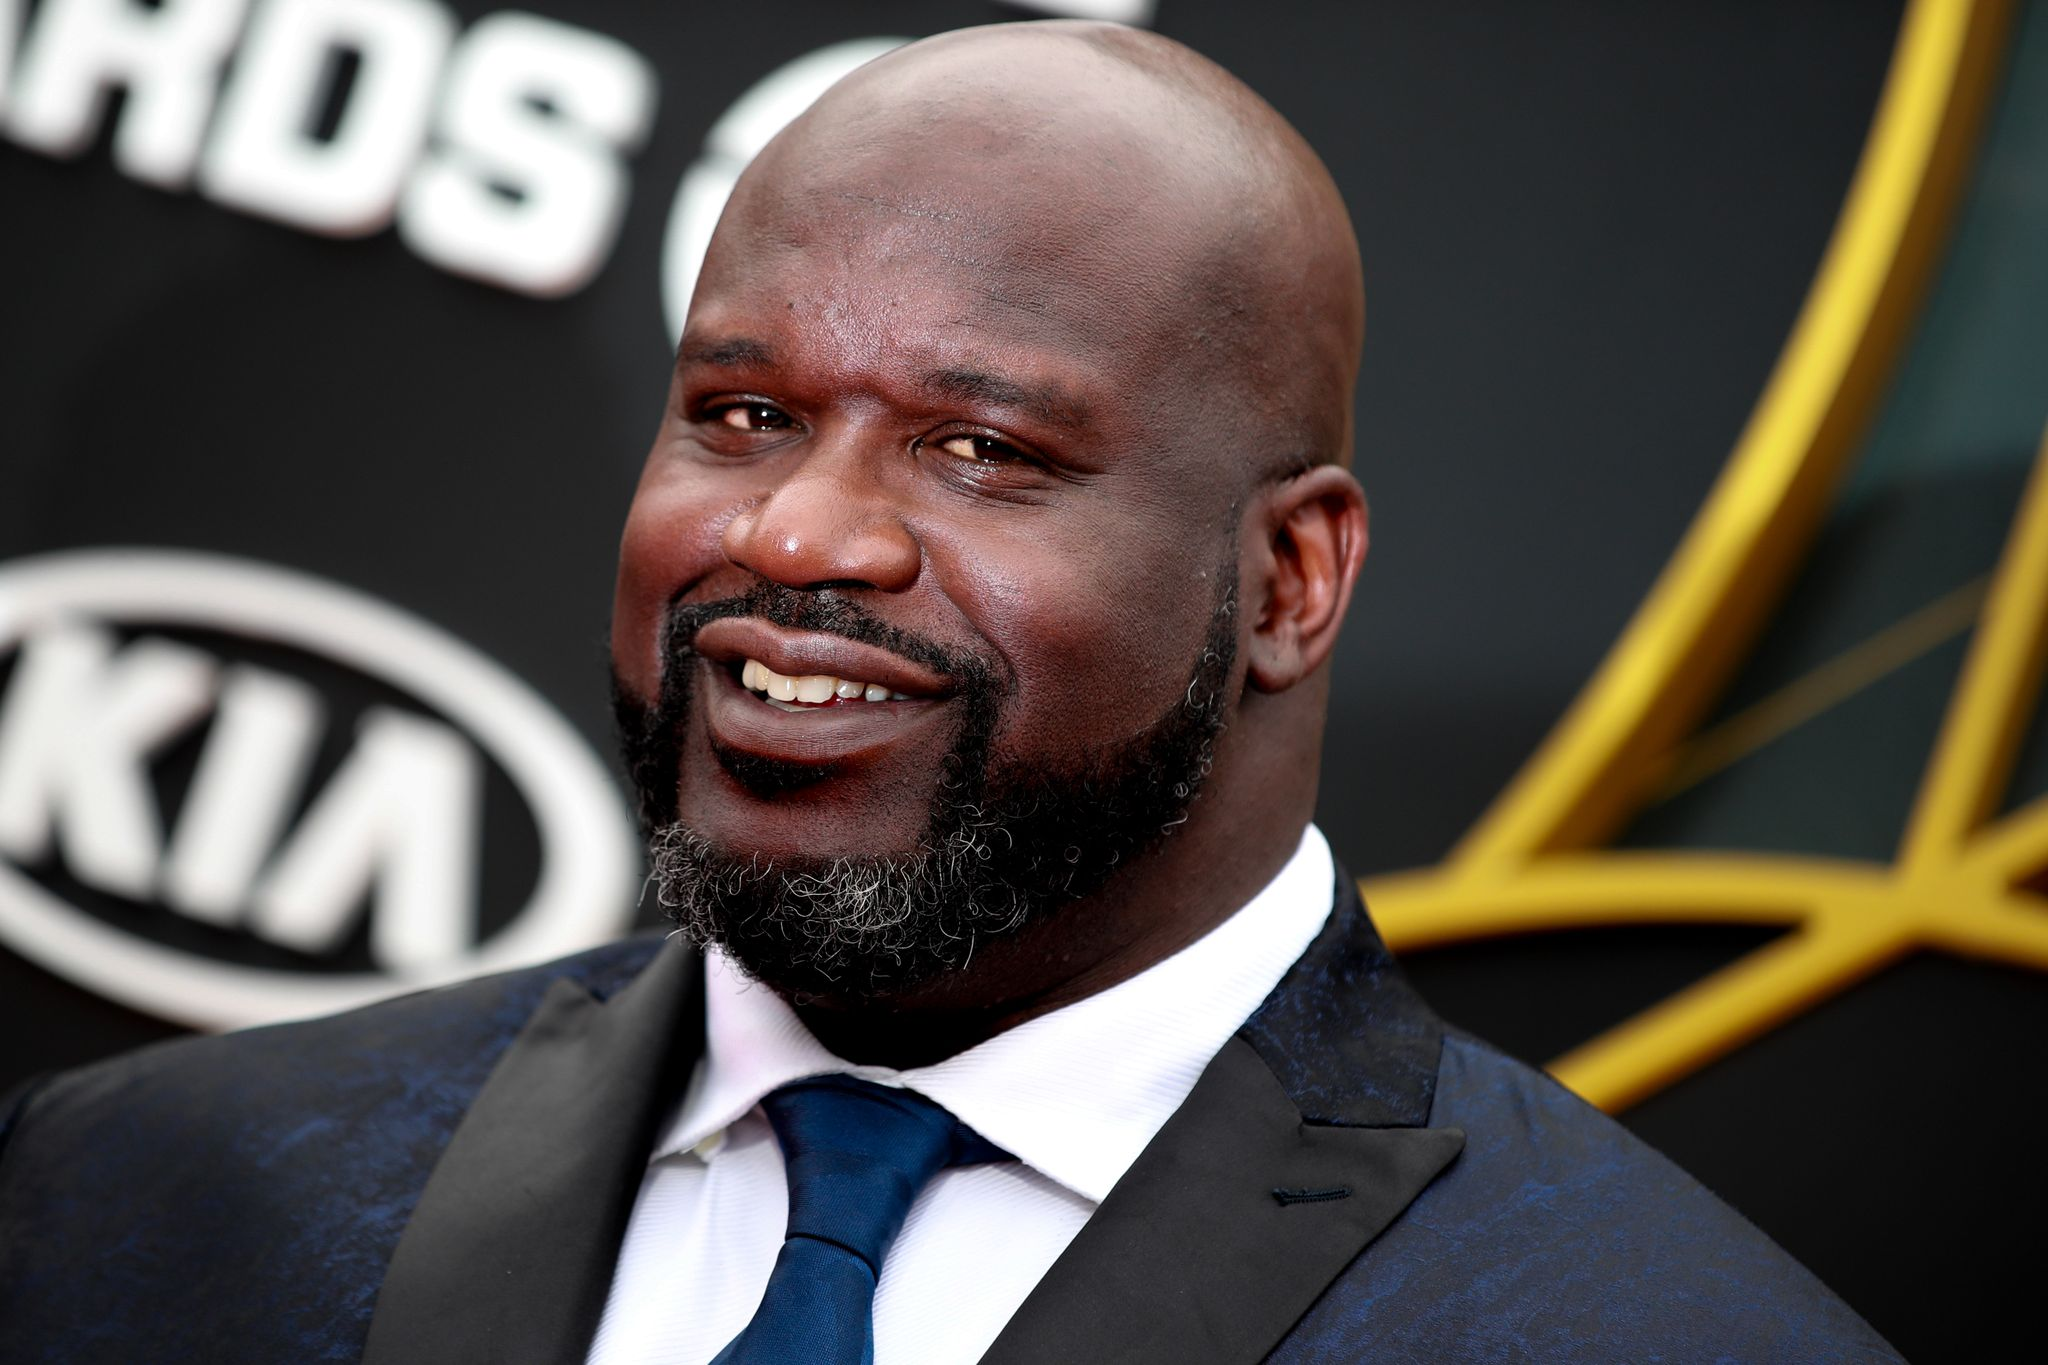 Shaquille O'Neal attends the 2019 NBA Awards at Barker Hangar on June 24, 2019 in Santa Monica, California | Photo: Getty Images